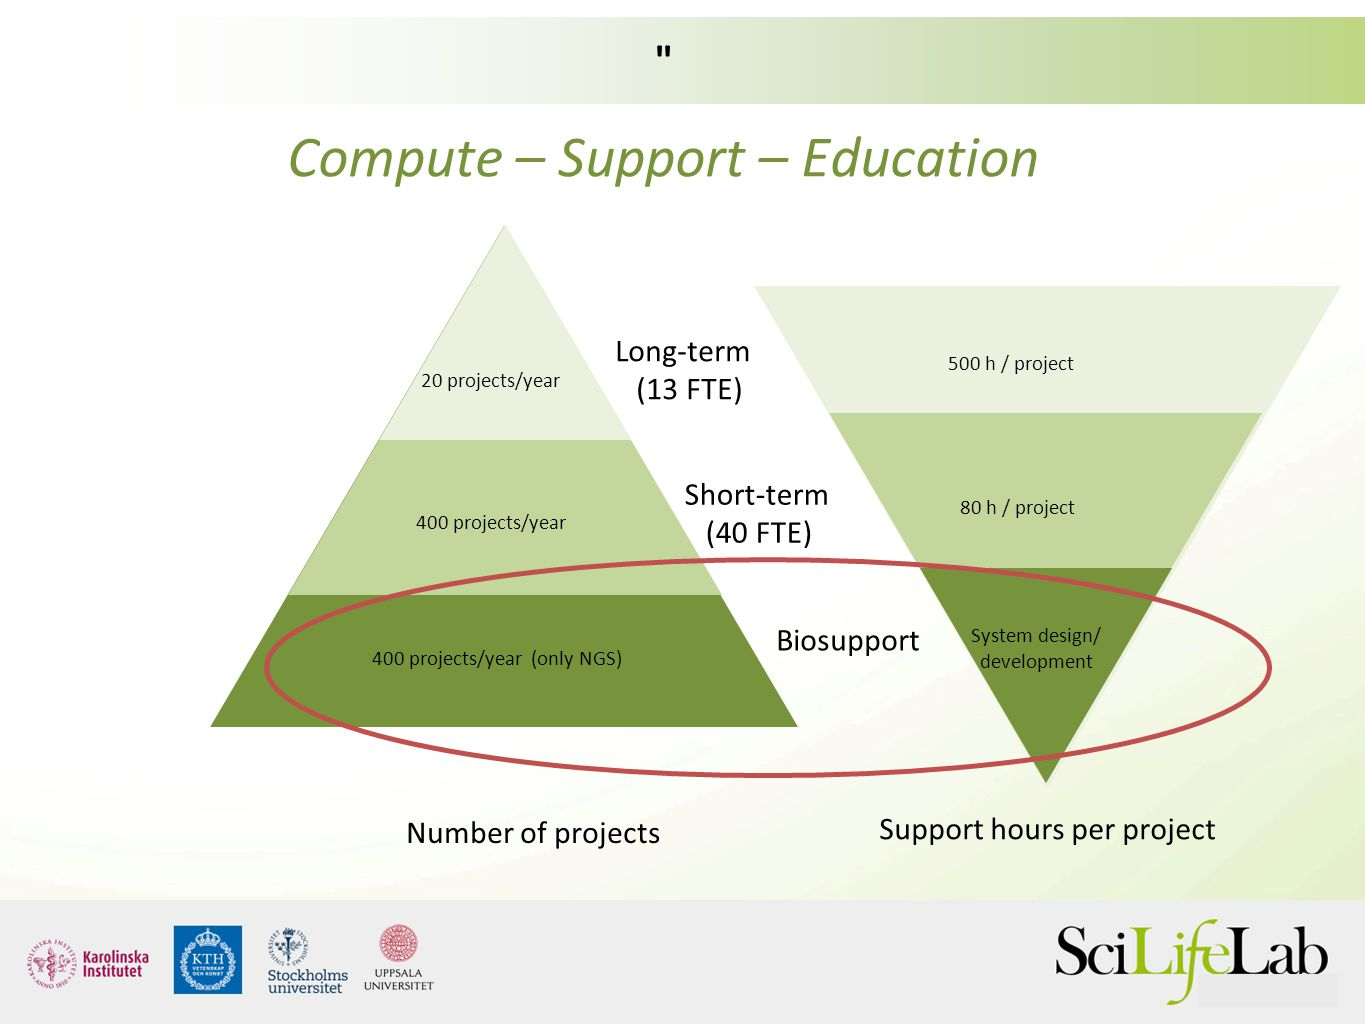 Short-term (40 FTE) Long-term (13 FTE) Biosupport Number of projects Support hours per project 20 projects/year 400 projects/year 500 h / project 80 h